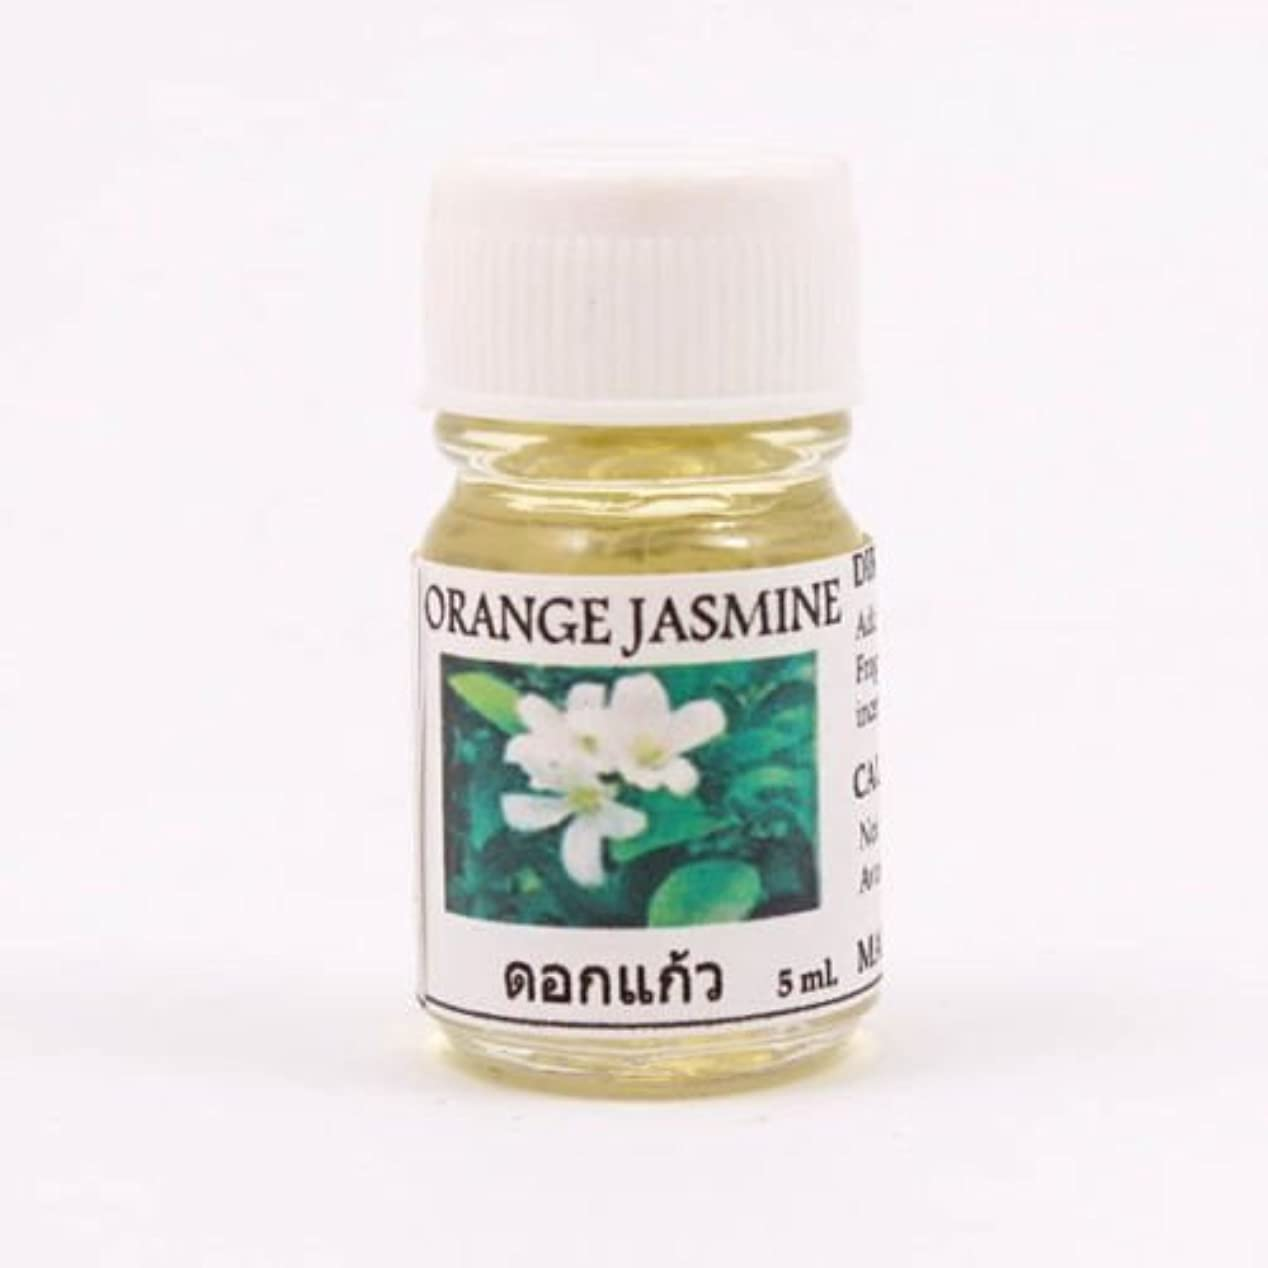 計算する大型トラック氷6X Orange Jasmine Aroma Fragrance Essential Oil 5ML. (cc) Diffuser Burner